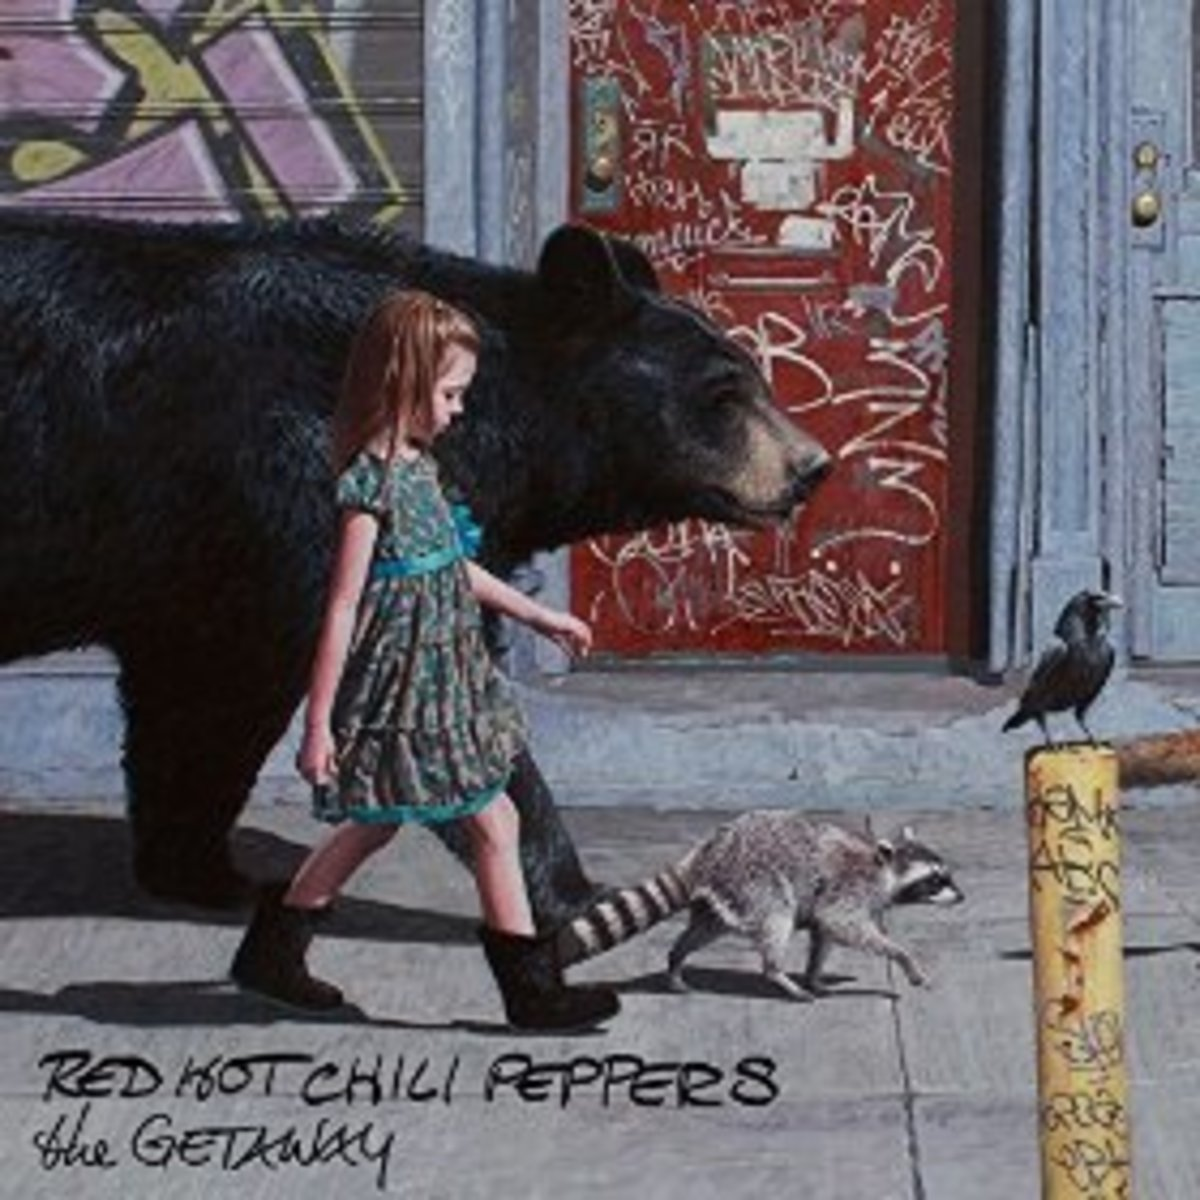 Chili Peppers spice it up in revival of their glory days: 3.5/5 stars